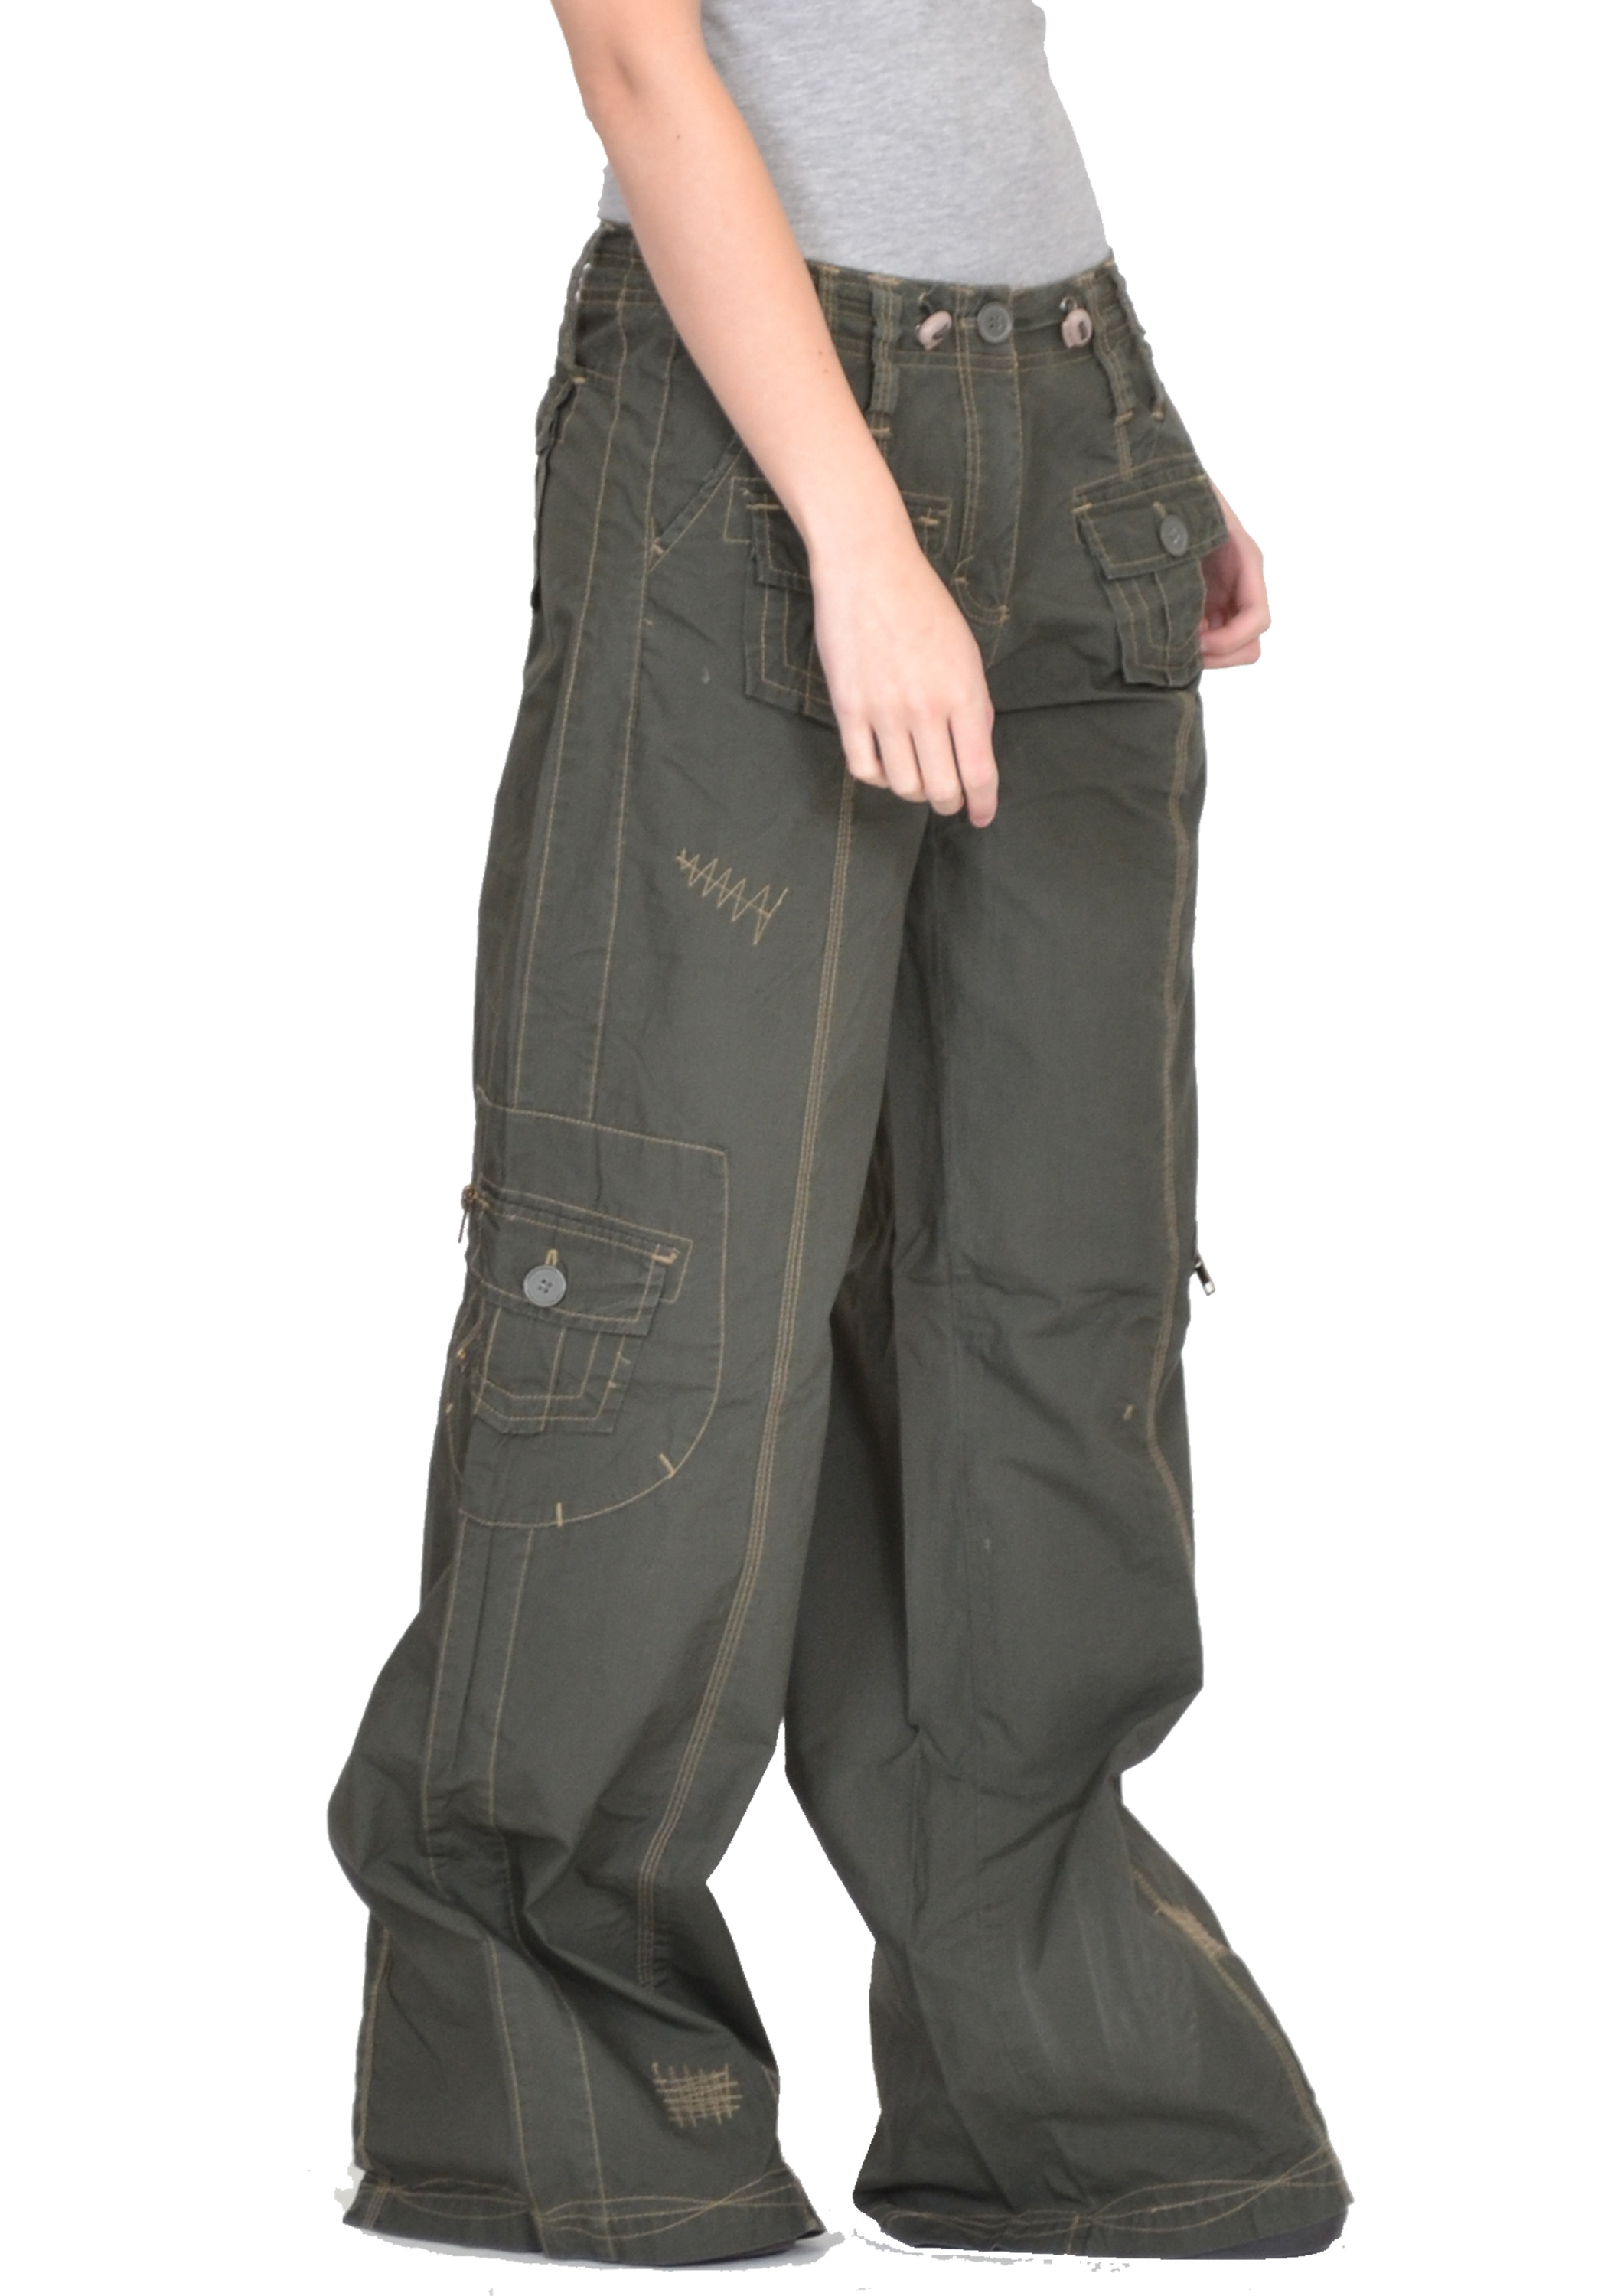 Vintage Women's Baggy Pants. Authentic Womans Vintage Baggy Pants at ganjamoney.tk